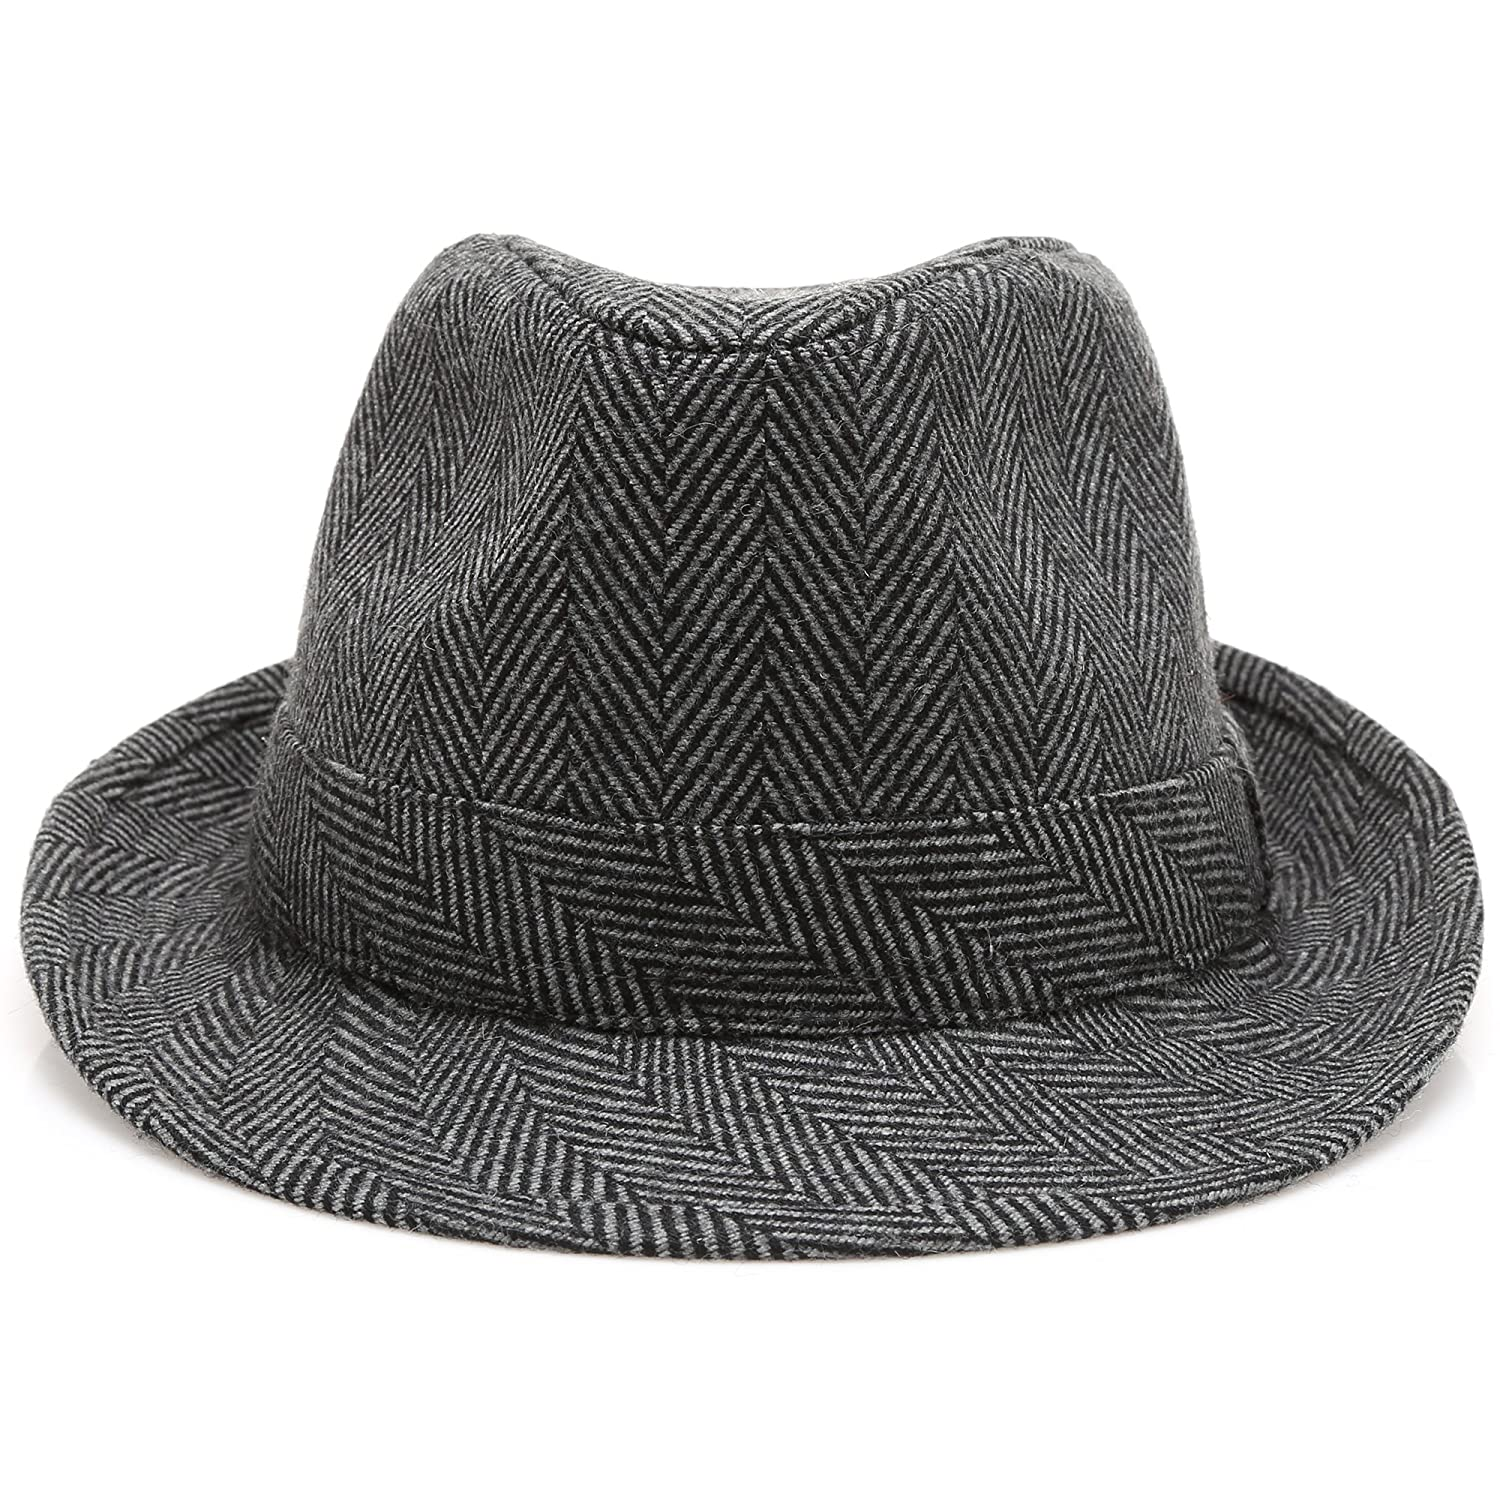 4f673754a16ef7 MIRMARU Men's Wool Blend Short Brim Fedora Hat with Band at Amazon Men's  Clothing store: